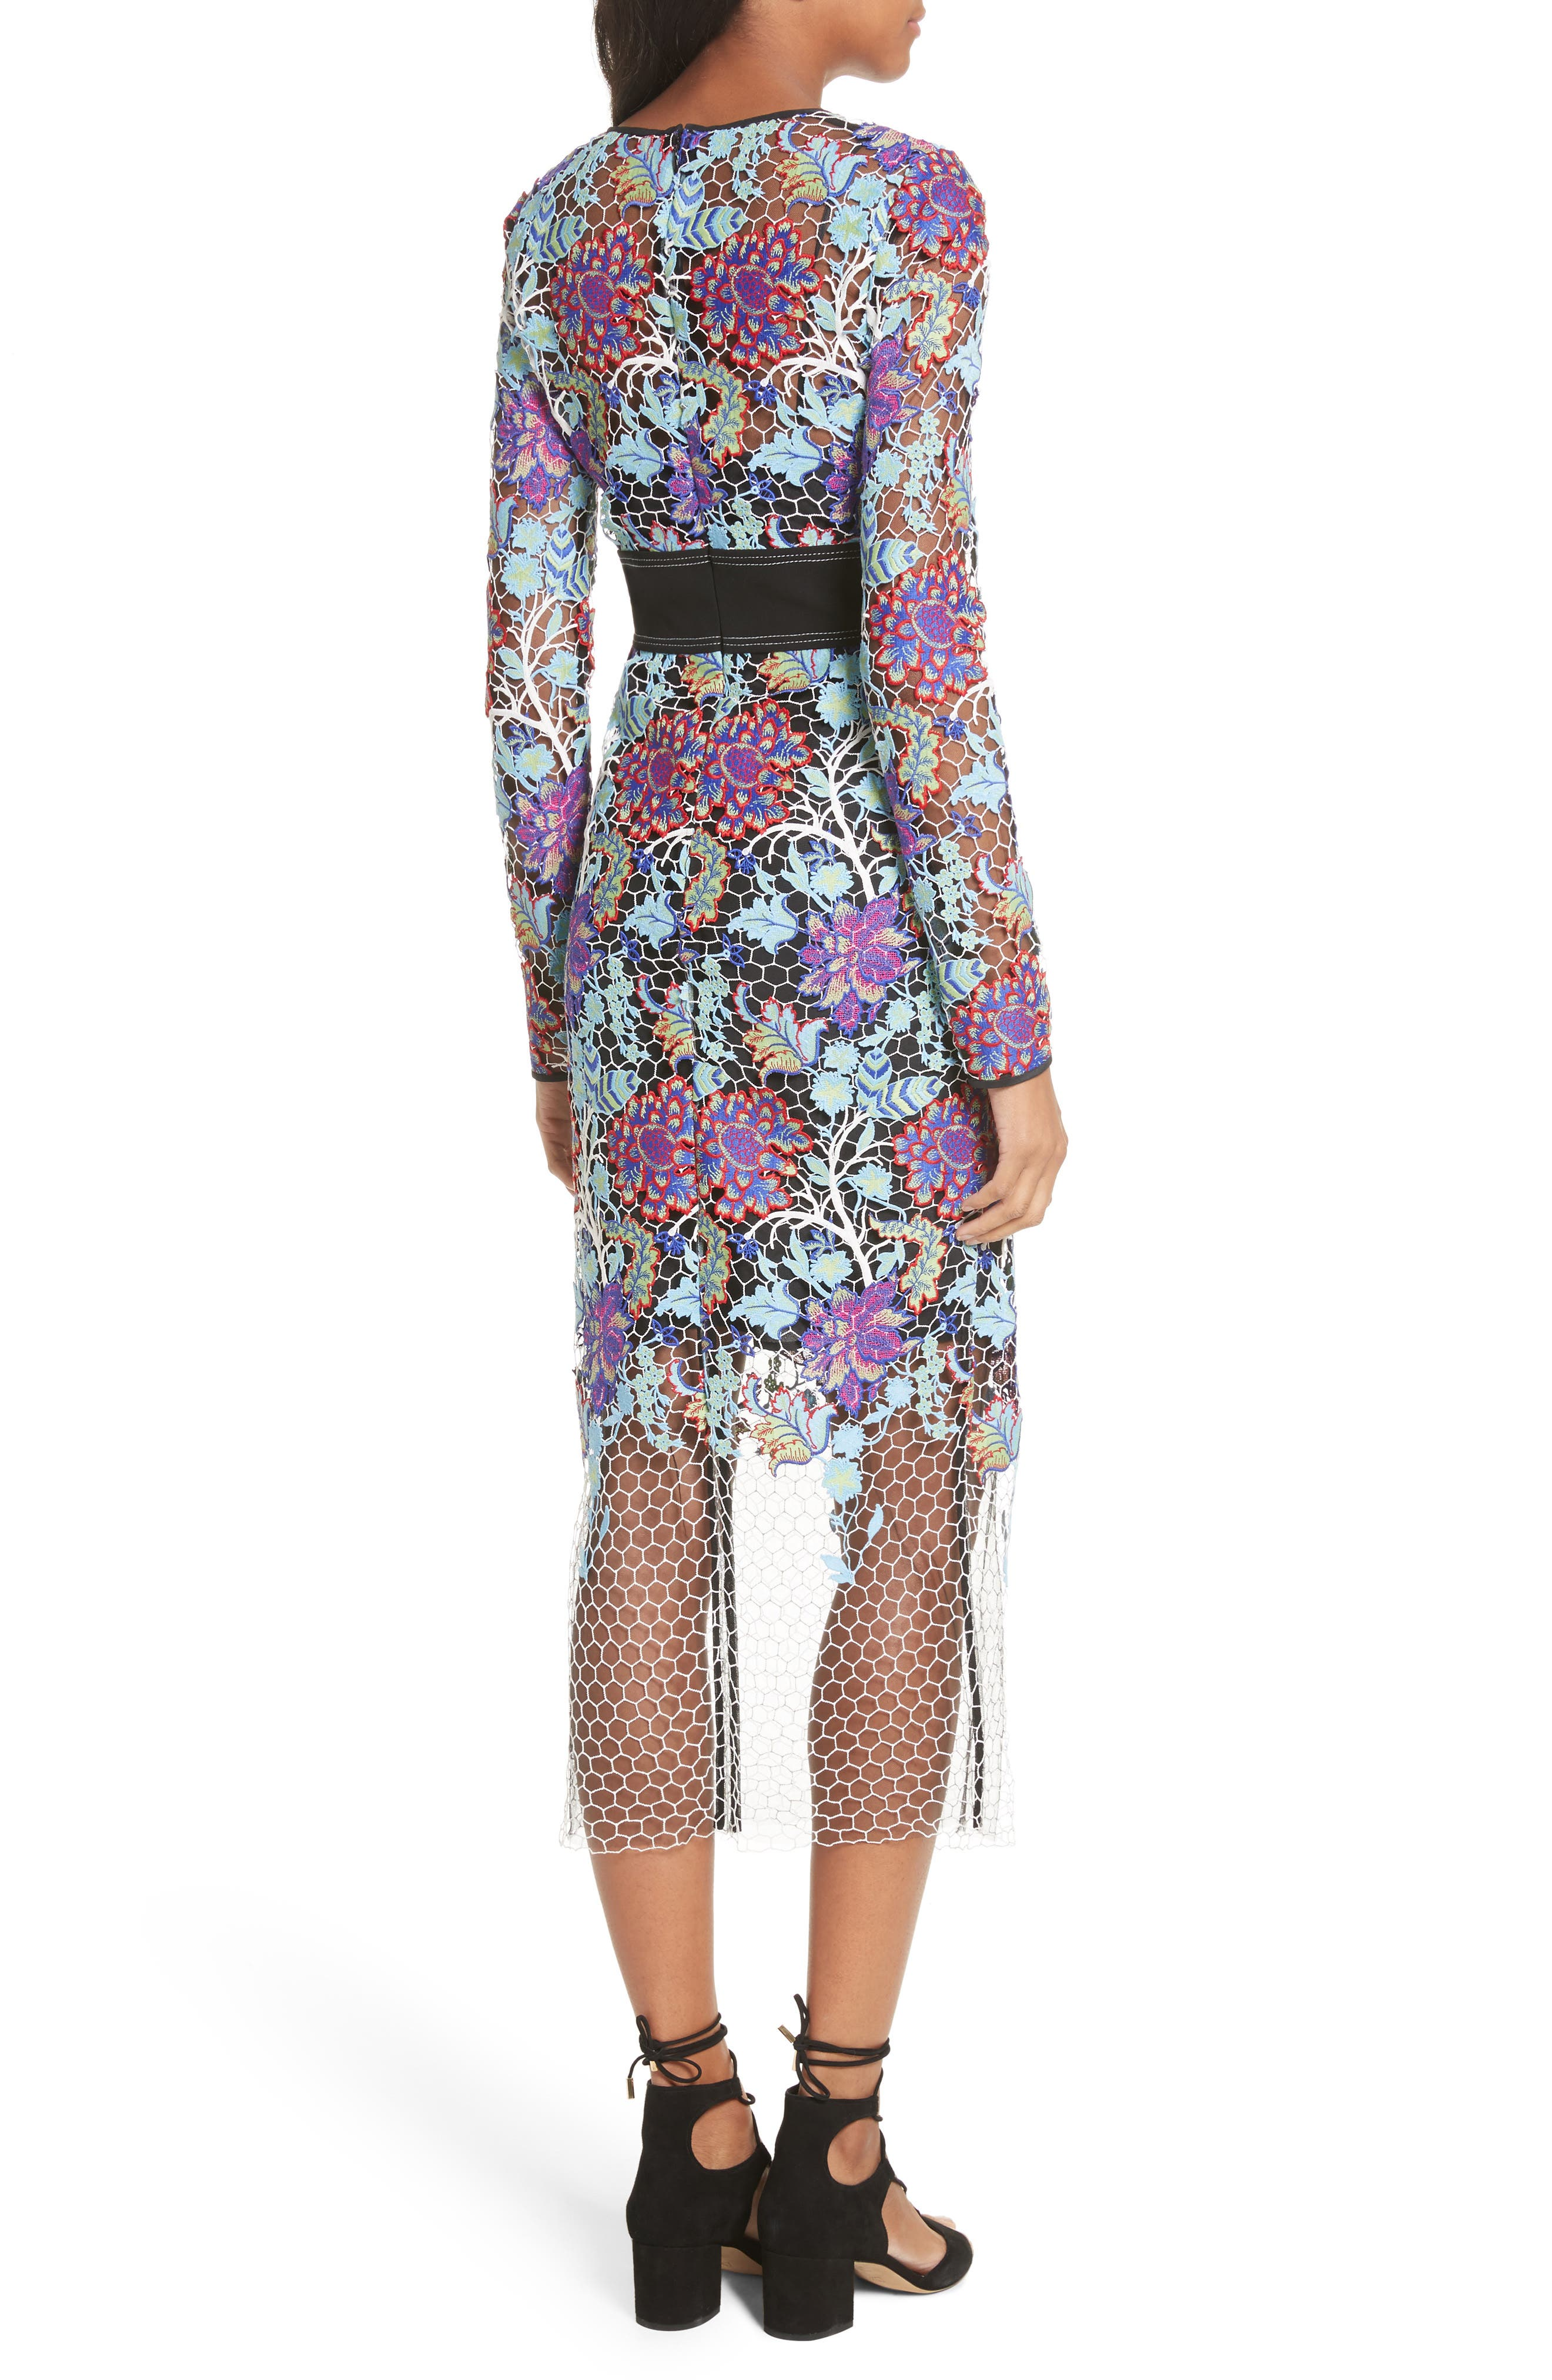 Banded Lace Overlay Dress,                             Alternate thumbnail 2, color,                             Ivory Multi